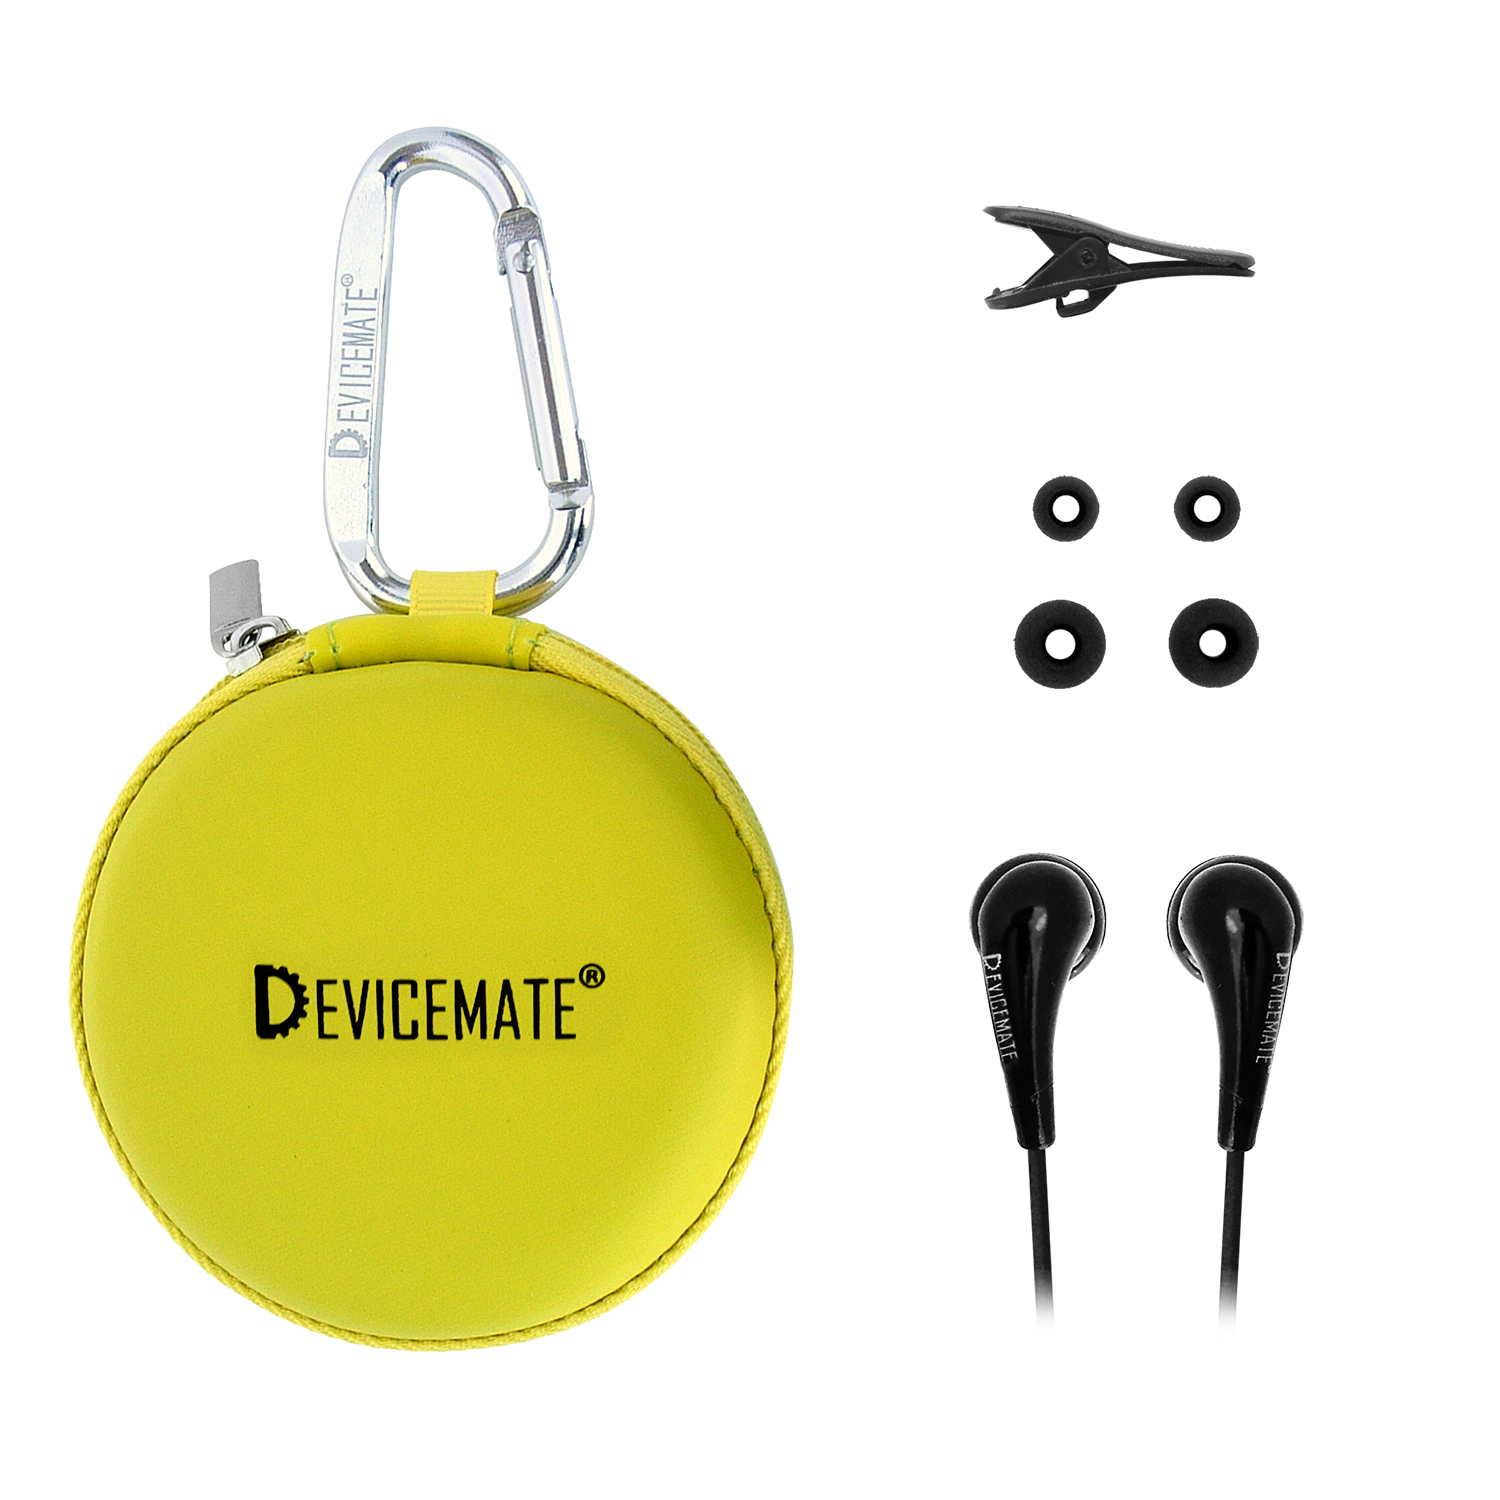 Devicemate SD 255-CLG In-Ear Stereo Earphones [Lime Green] Case